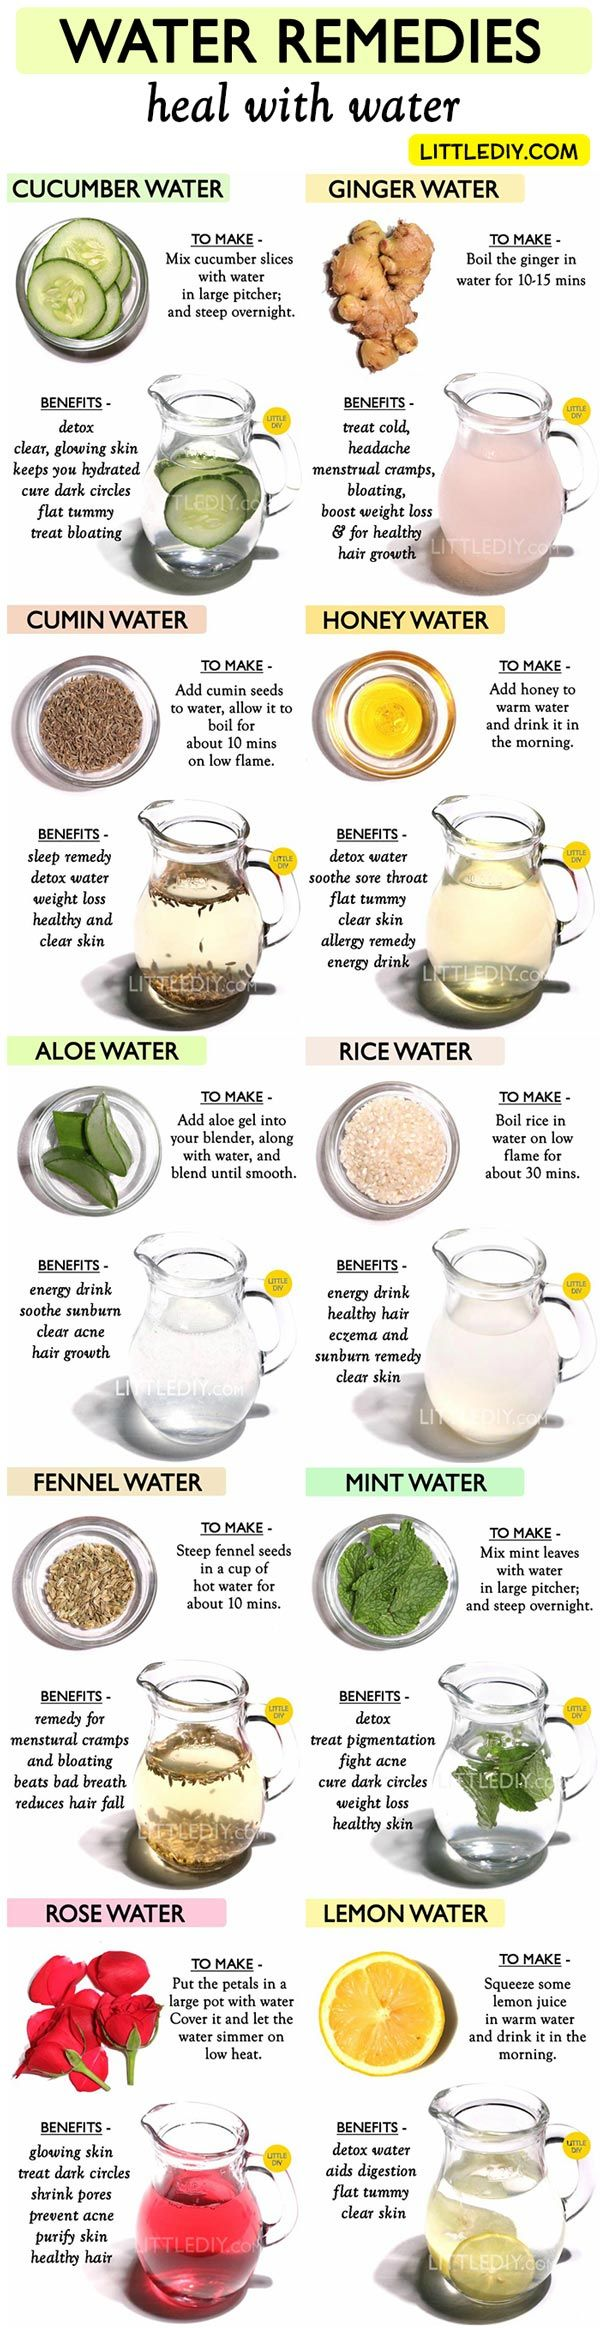 HEAL WITH WATER – Top 10 amazing WATER REMEDIES